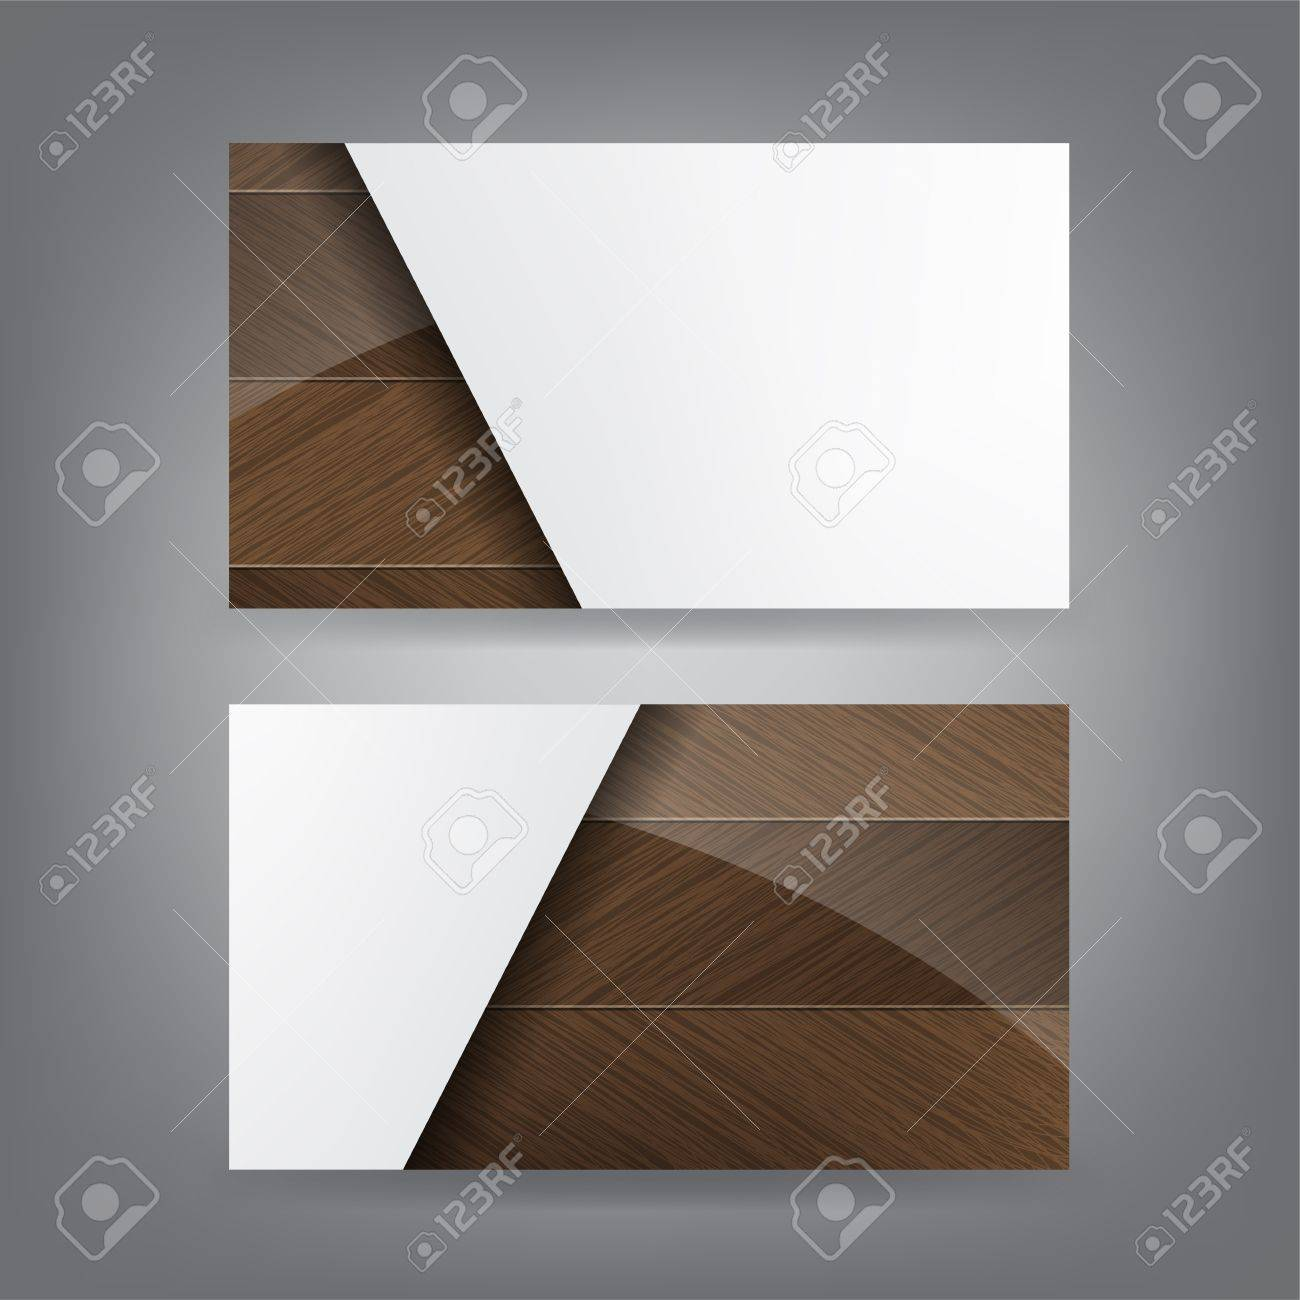 Shiny wood and paper theme business card template royalty free shiny wood and paper theme business card template stock vector 18384272 reheart Choice Image